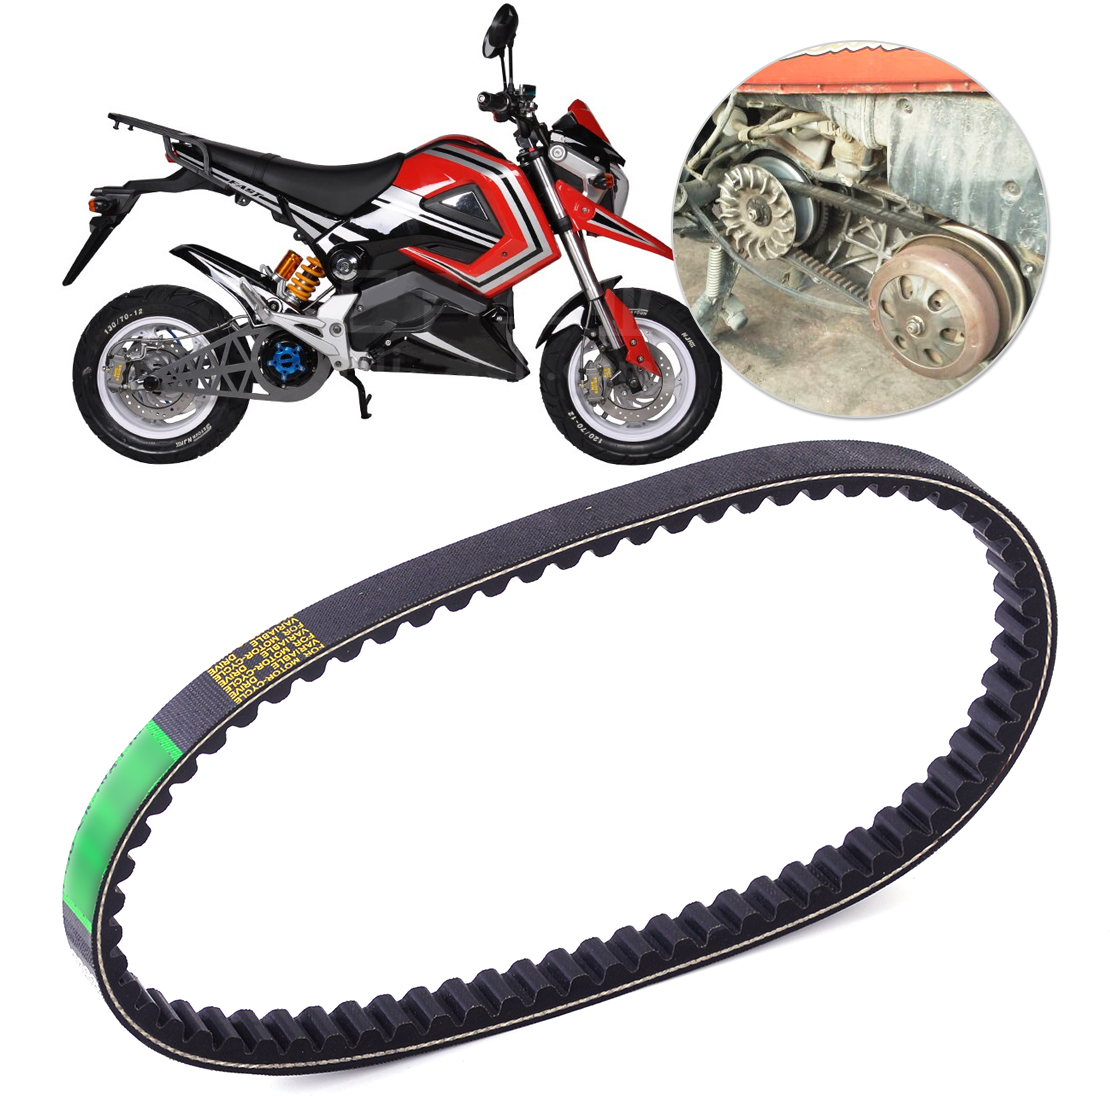 50cc Gy6 Scooter Moped Drive Belt 669-18-30